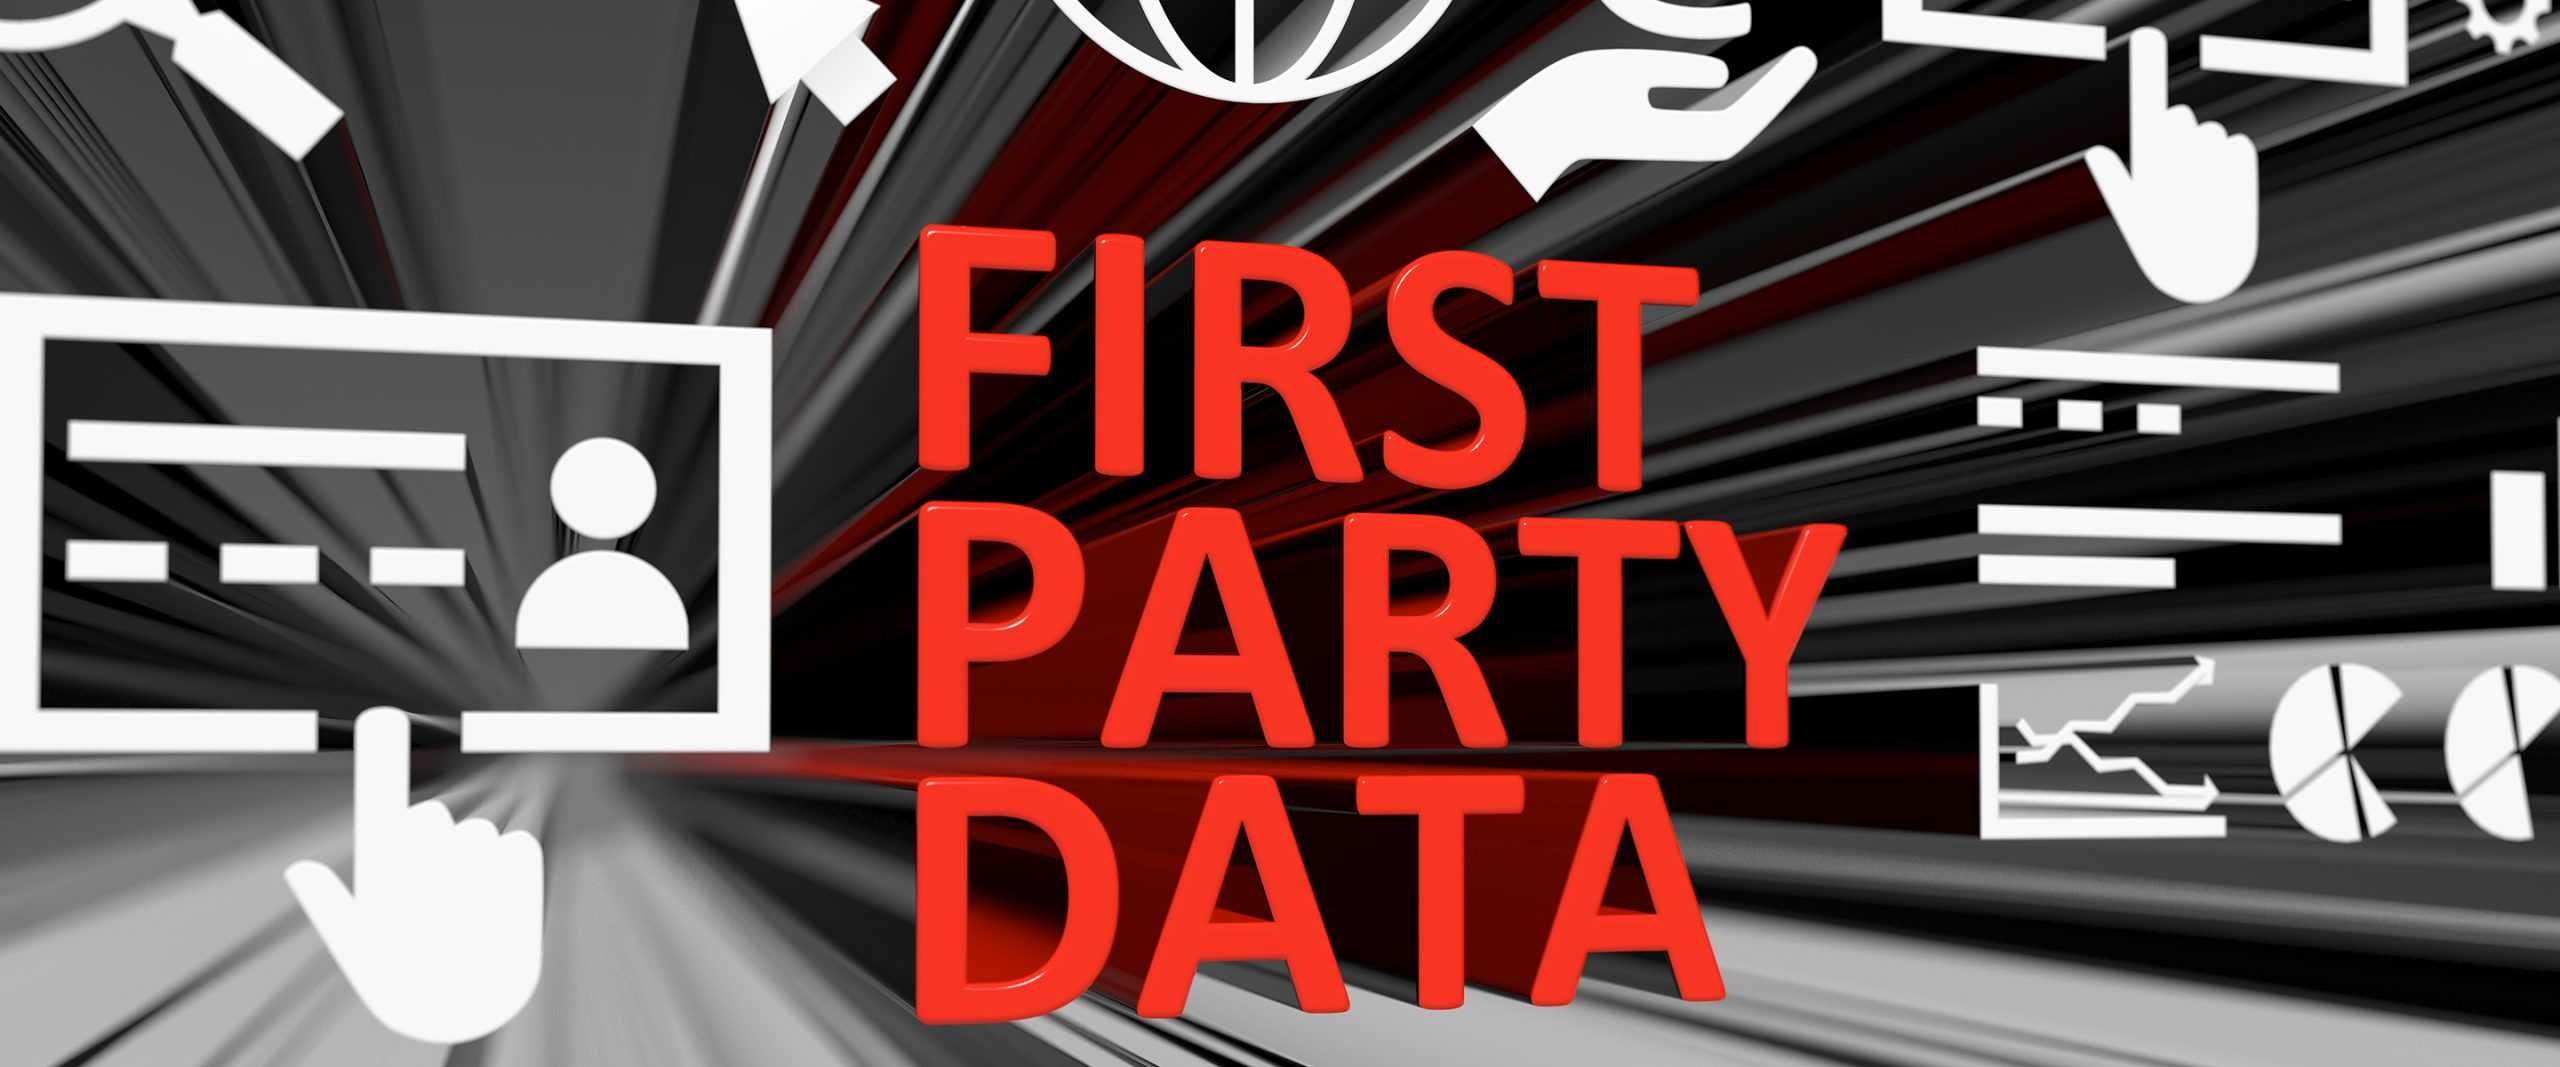 First party data is growing in importance as we move towards increasing privacy and consumer controls globally